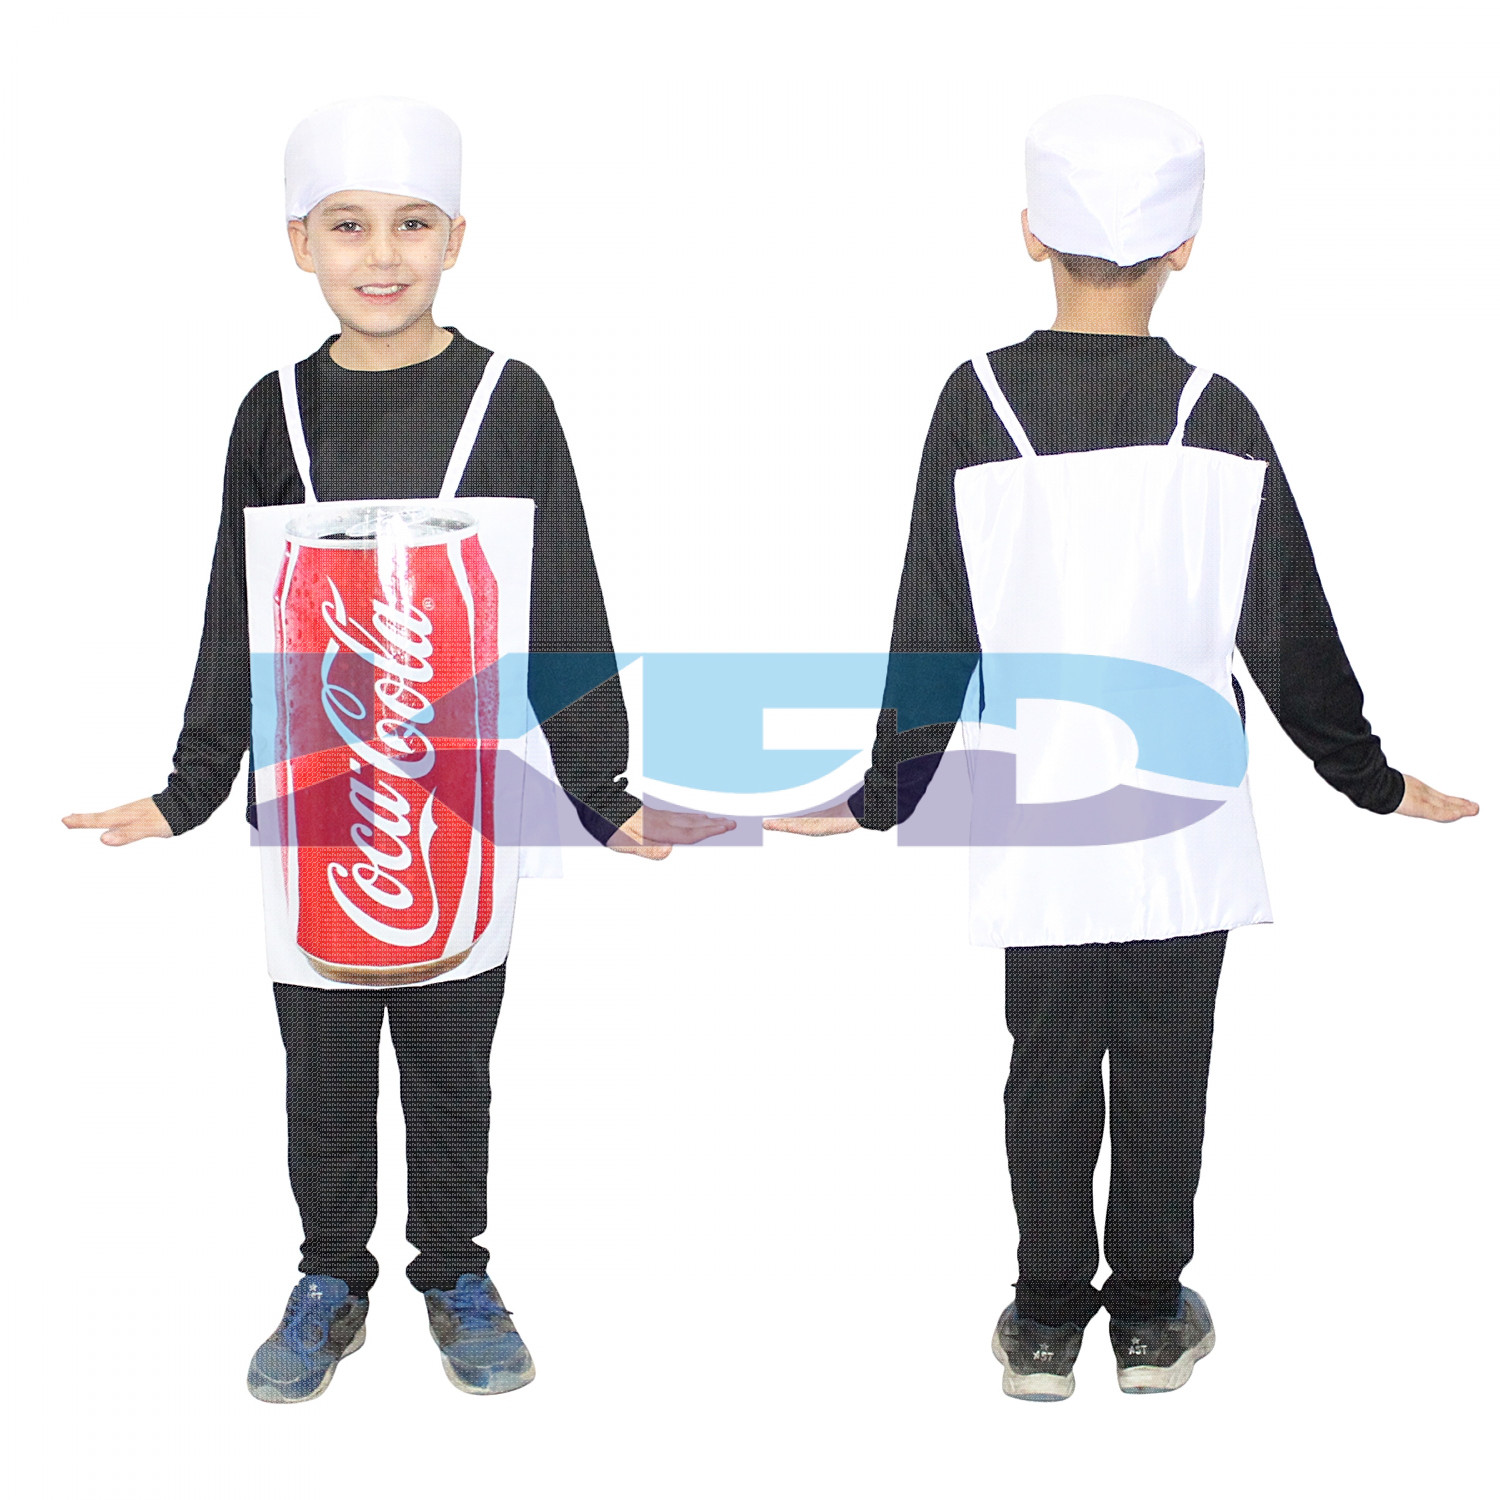 Coca Cola fancy dress for kids,Object Costume for School Annual function/Theme Party/Competition/Stage Shows Dress